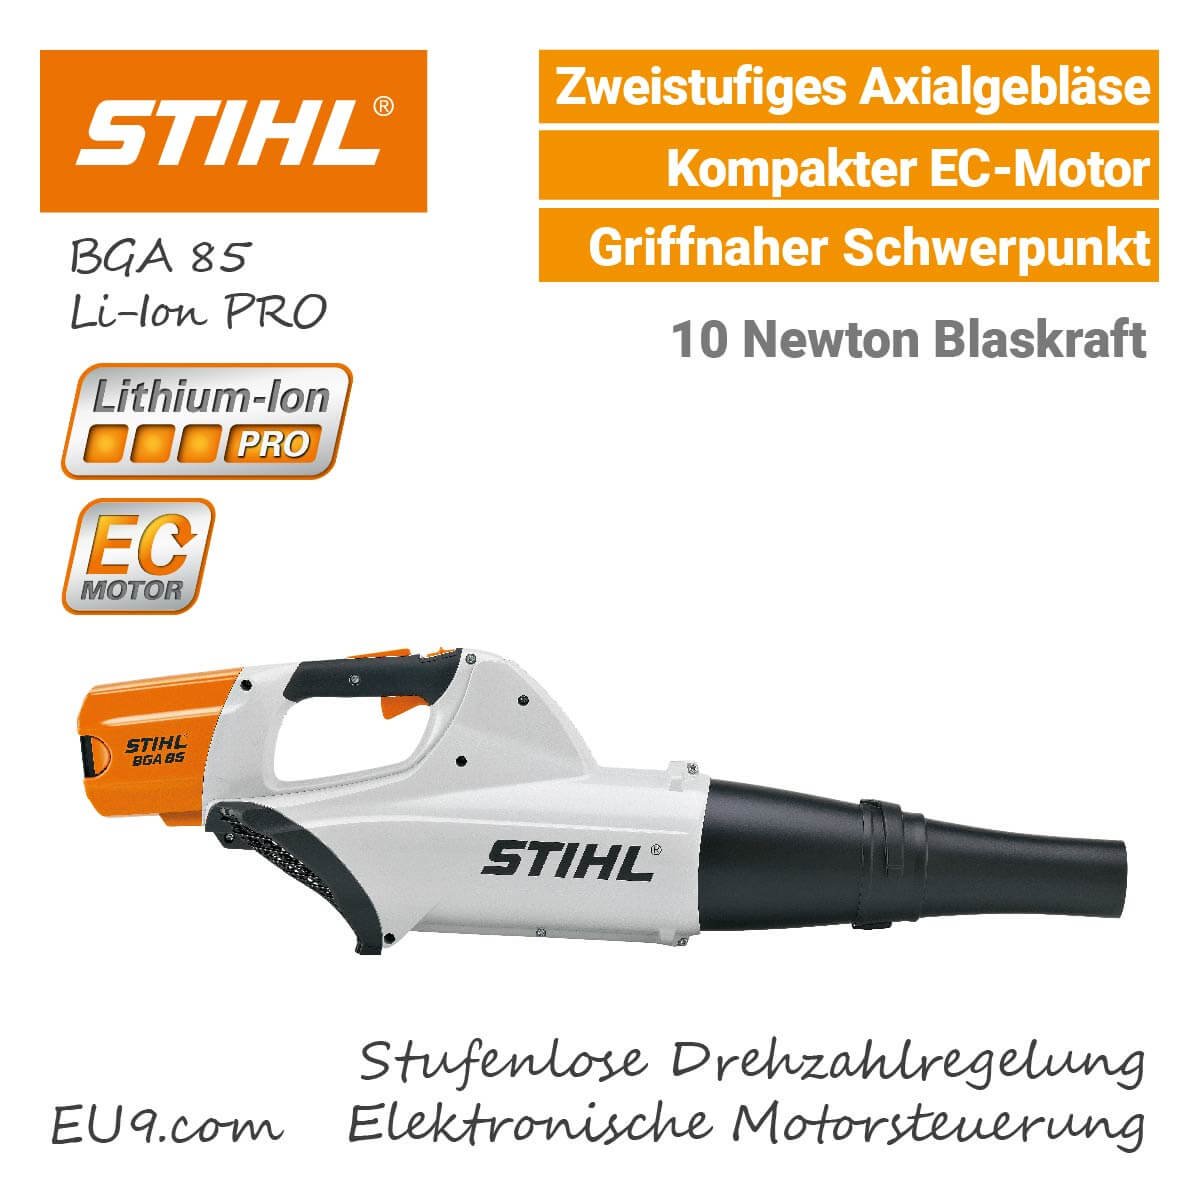 stihl akku laubsauger stihl laubsauger stihl laubbl ser im test elektro benzin akku laubbl ser. Black Bedroom Furniture Sets. Home Design Ideas